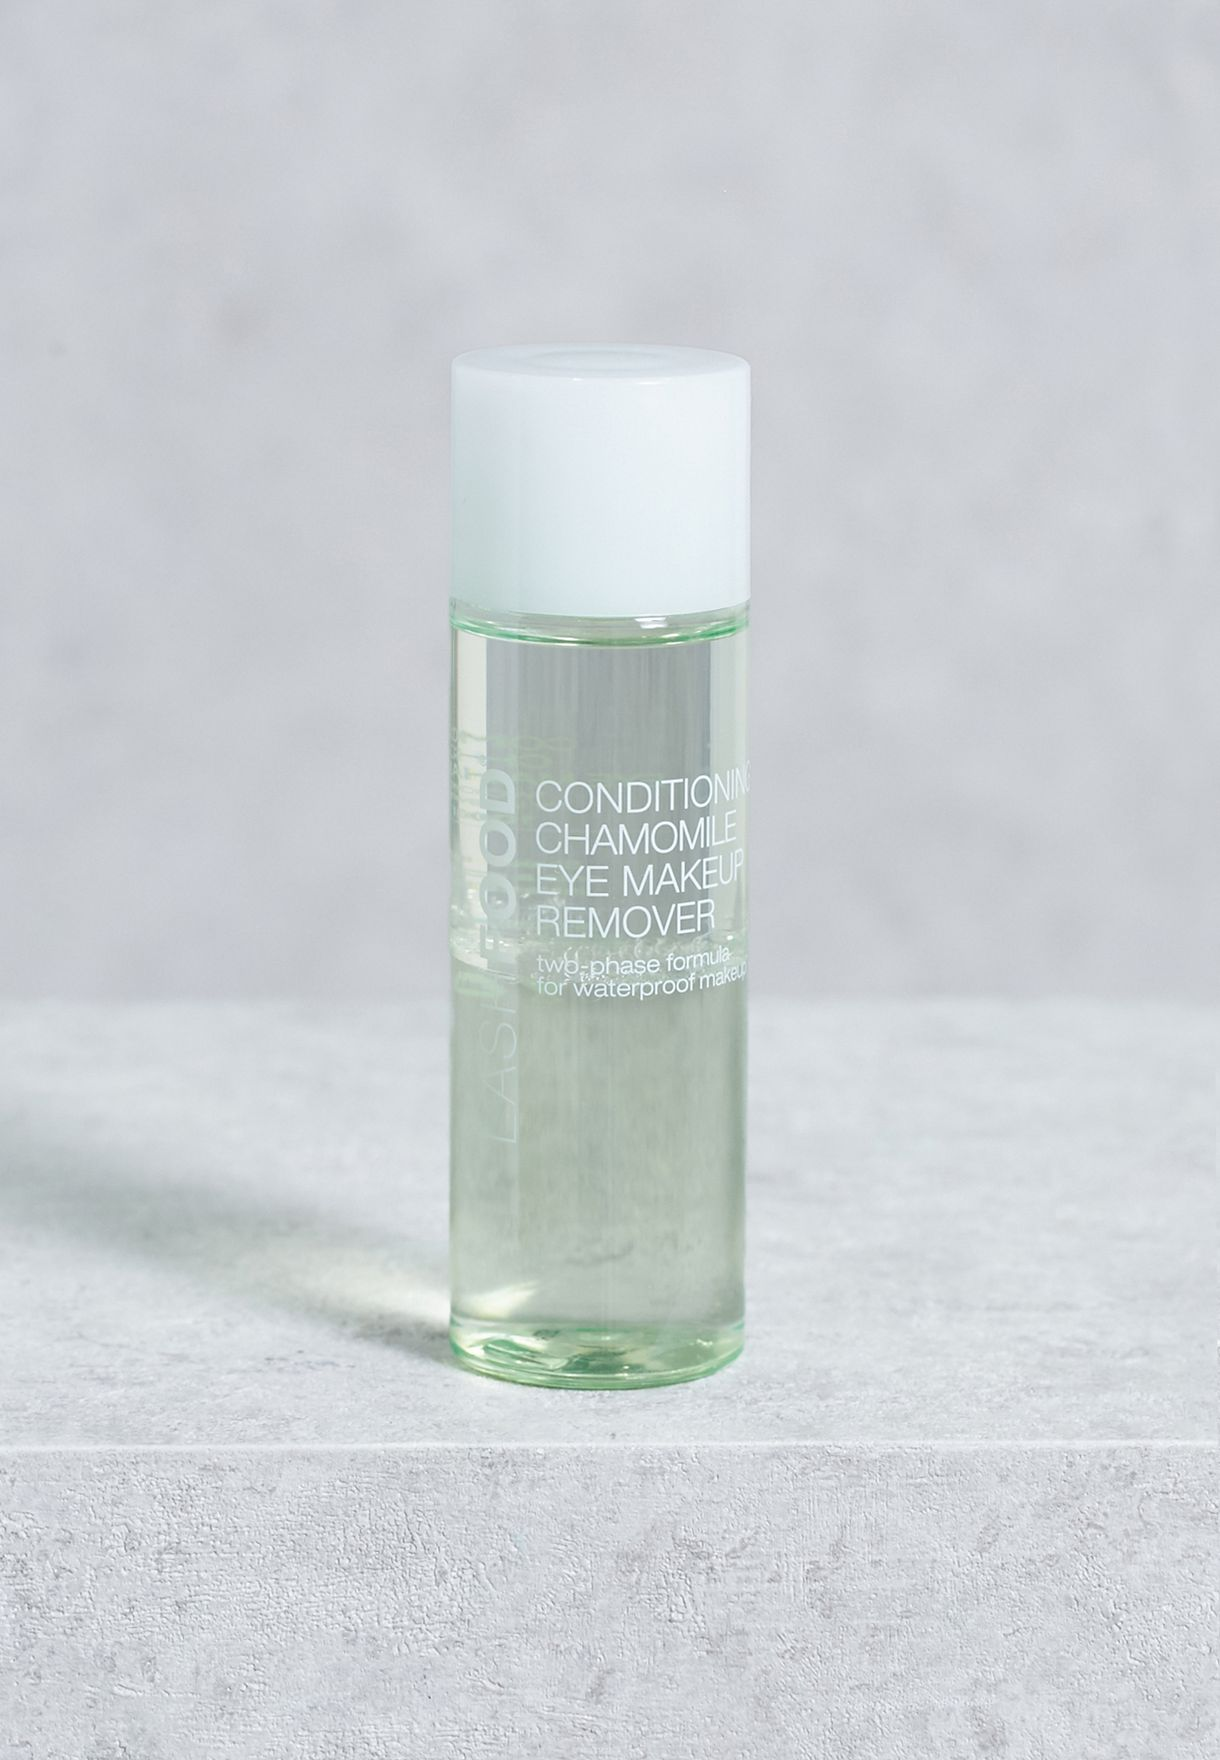 ... lashfood neutrals conditioning chamomile eye makeup remover sclsfxeye85888 for women in uae la298ac02thh ...